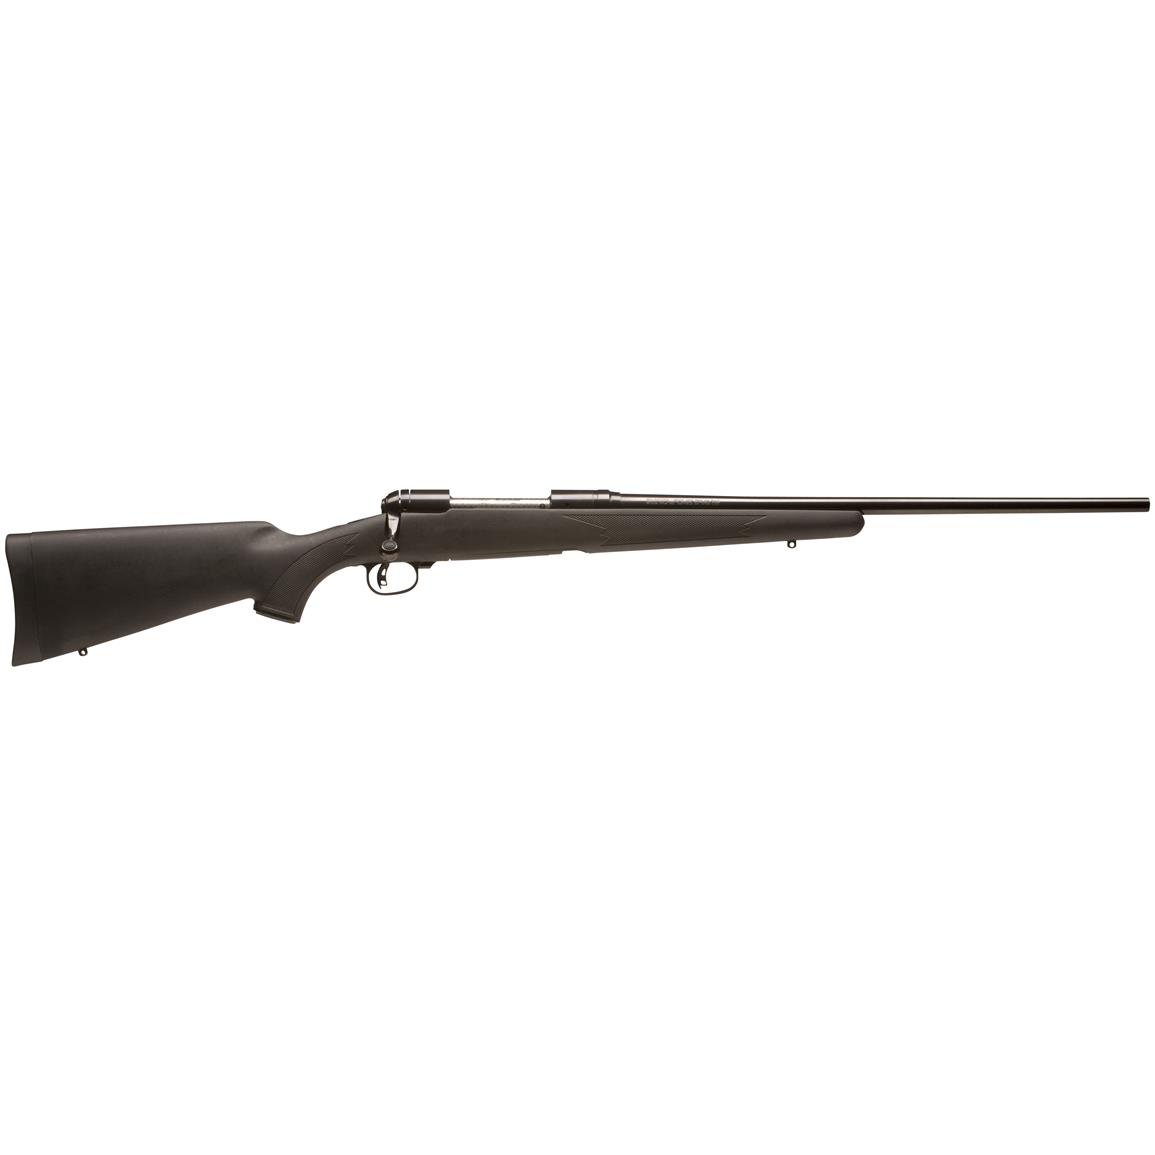 Savage Hunter Series 11 FCNS, Bolt Action, .243 Winchester, 17825, 011356178251, AccuStock, Detachable Mag